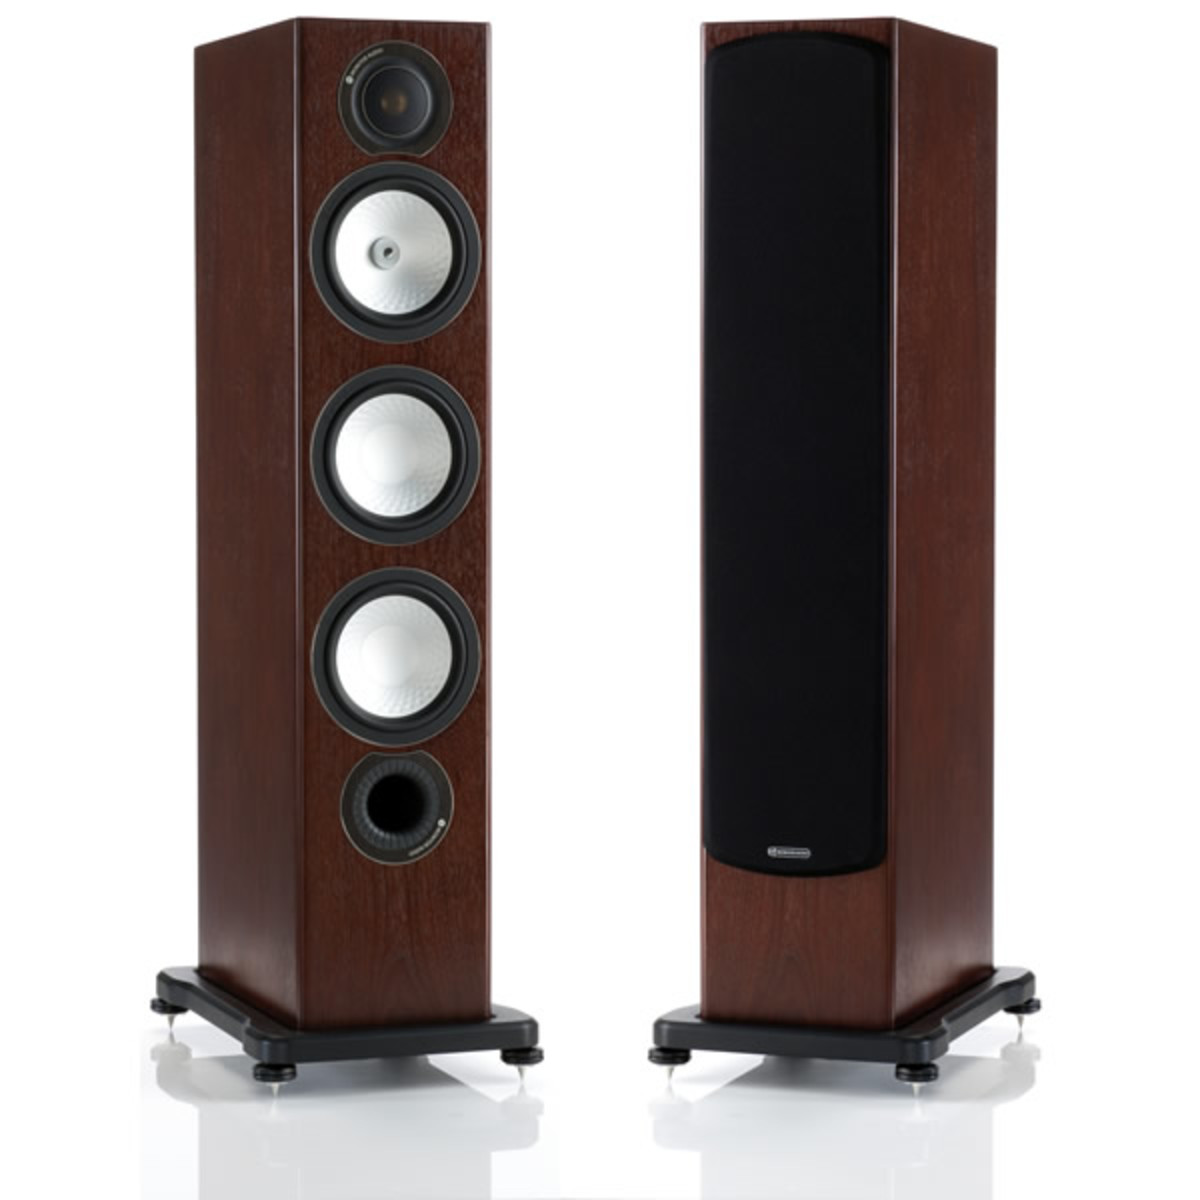 Monitor Audio RX8 loudspeakers